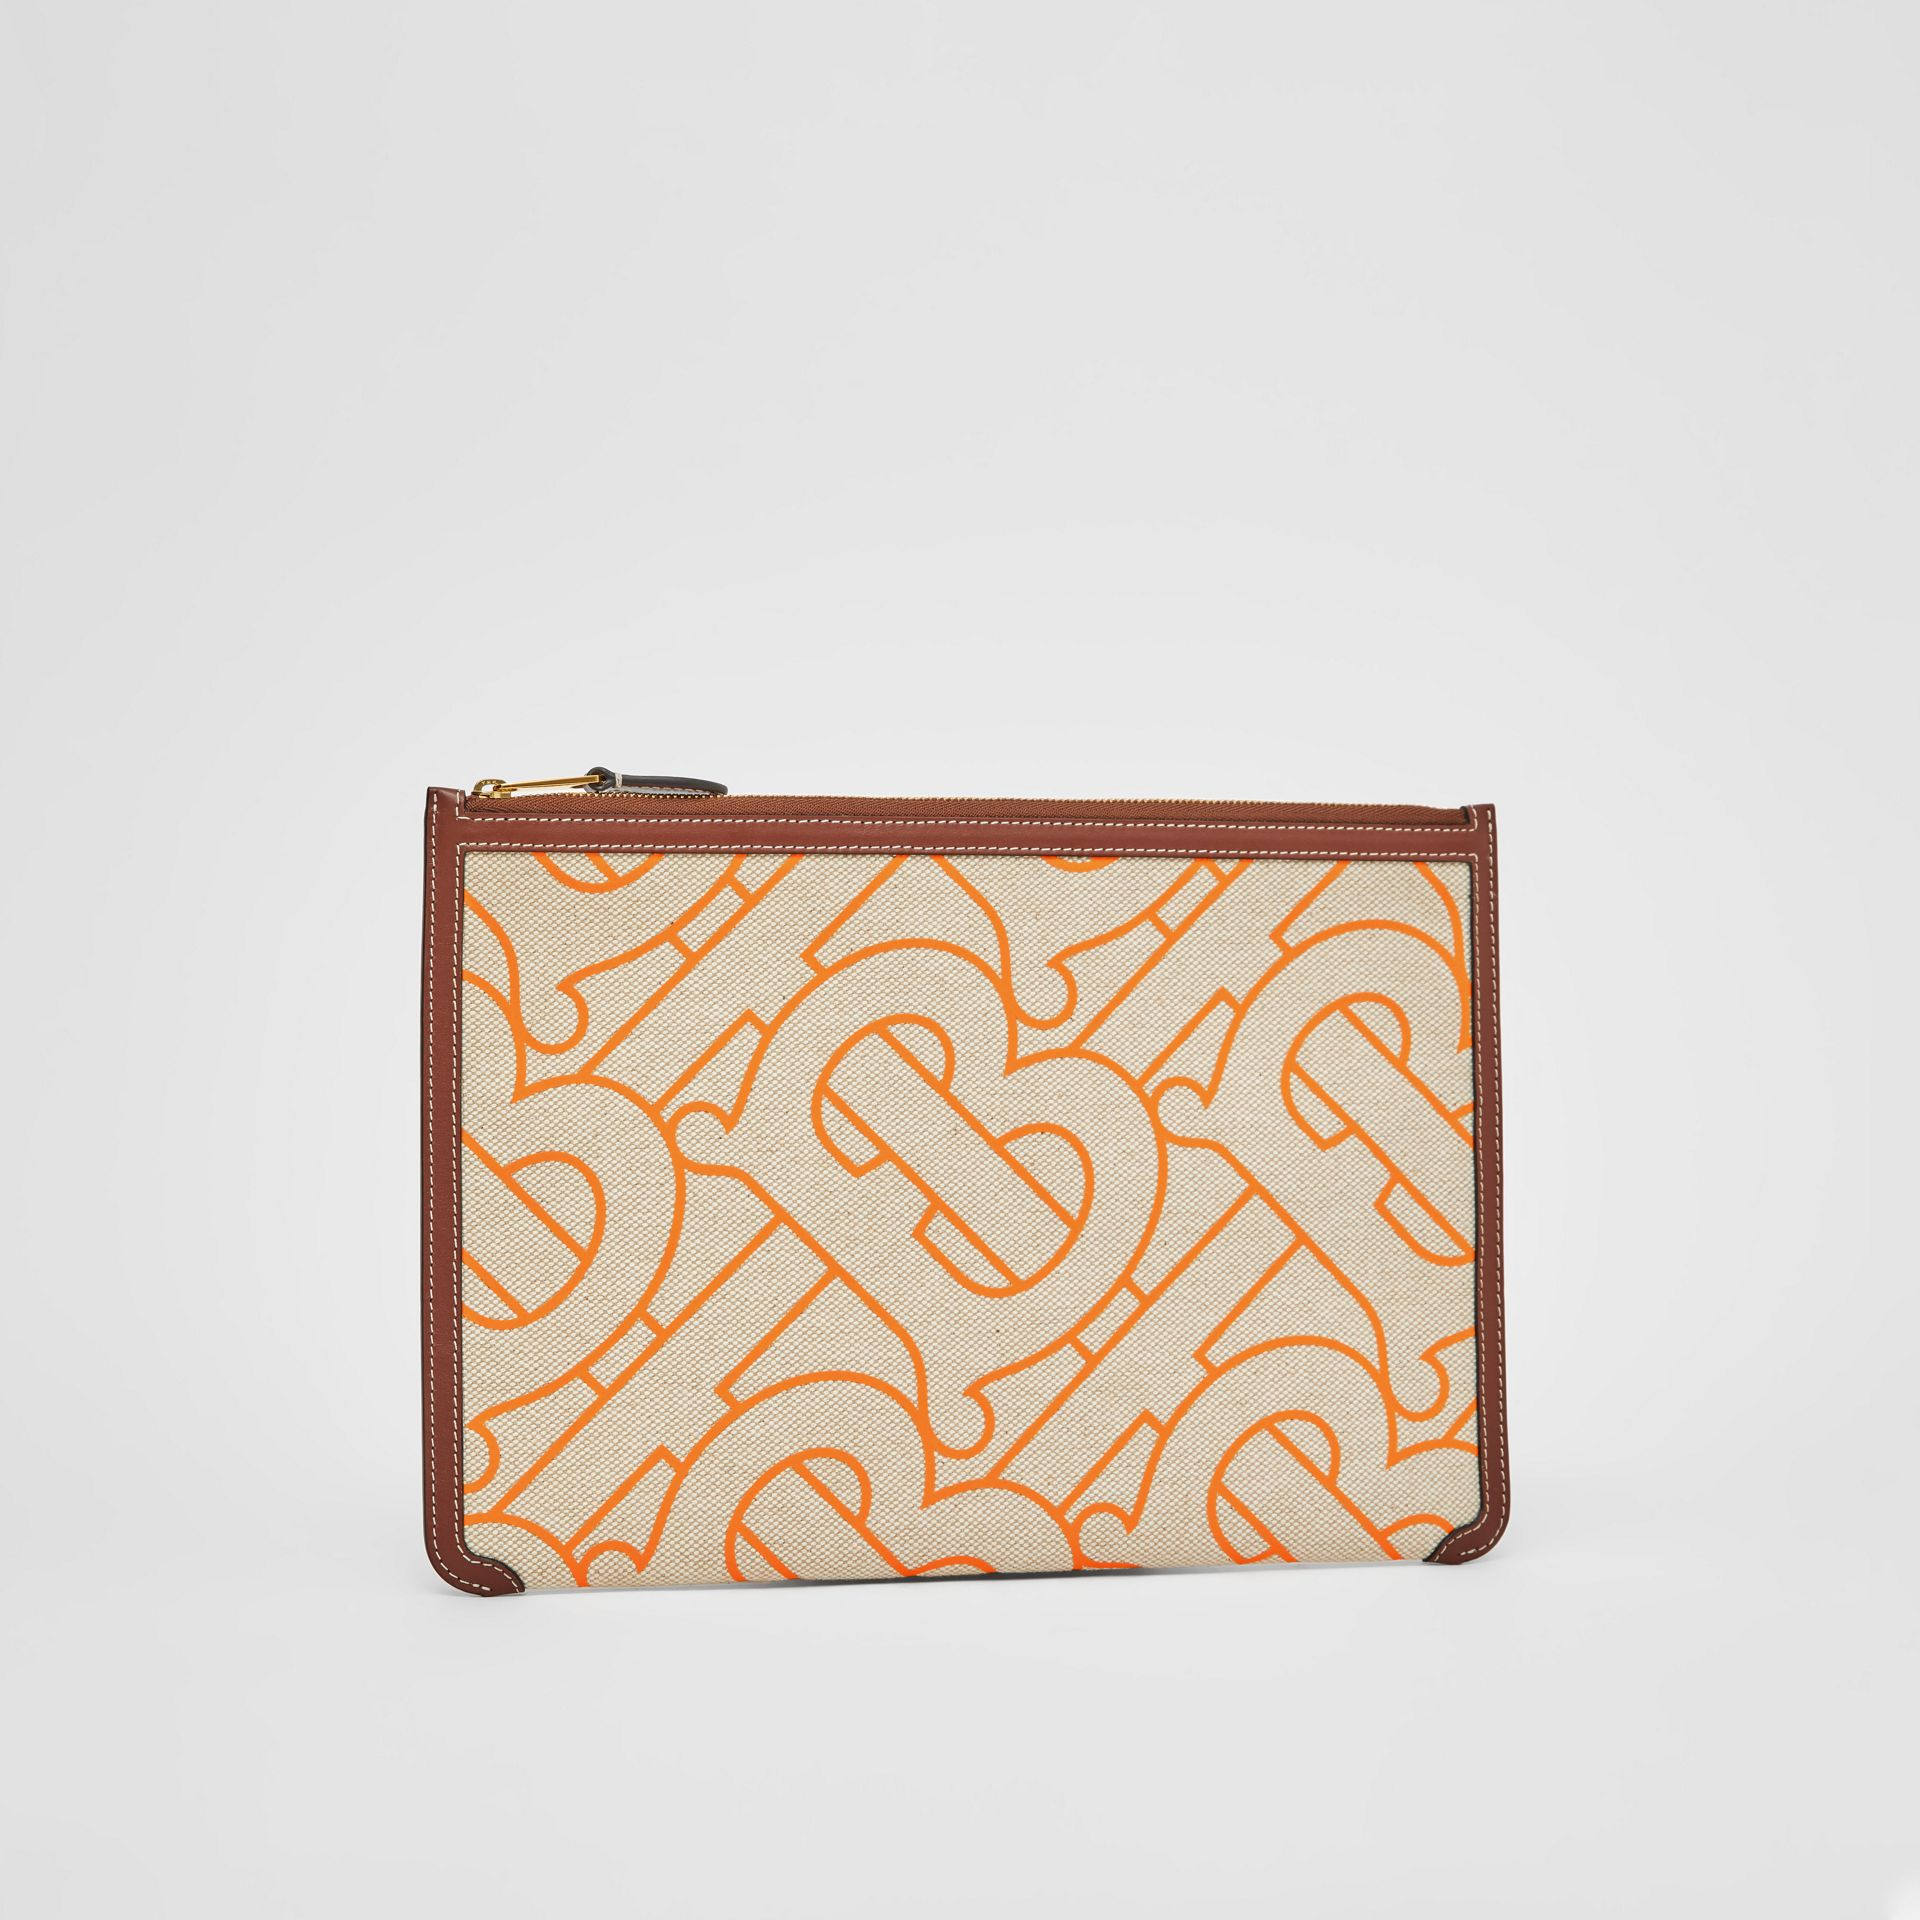 Monogram Motif Canvas and Leather Pouch in Natural/orange - Women | Burberry United Kingdom - gallery image 5